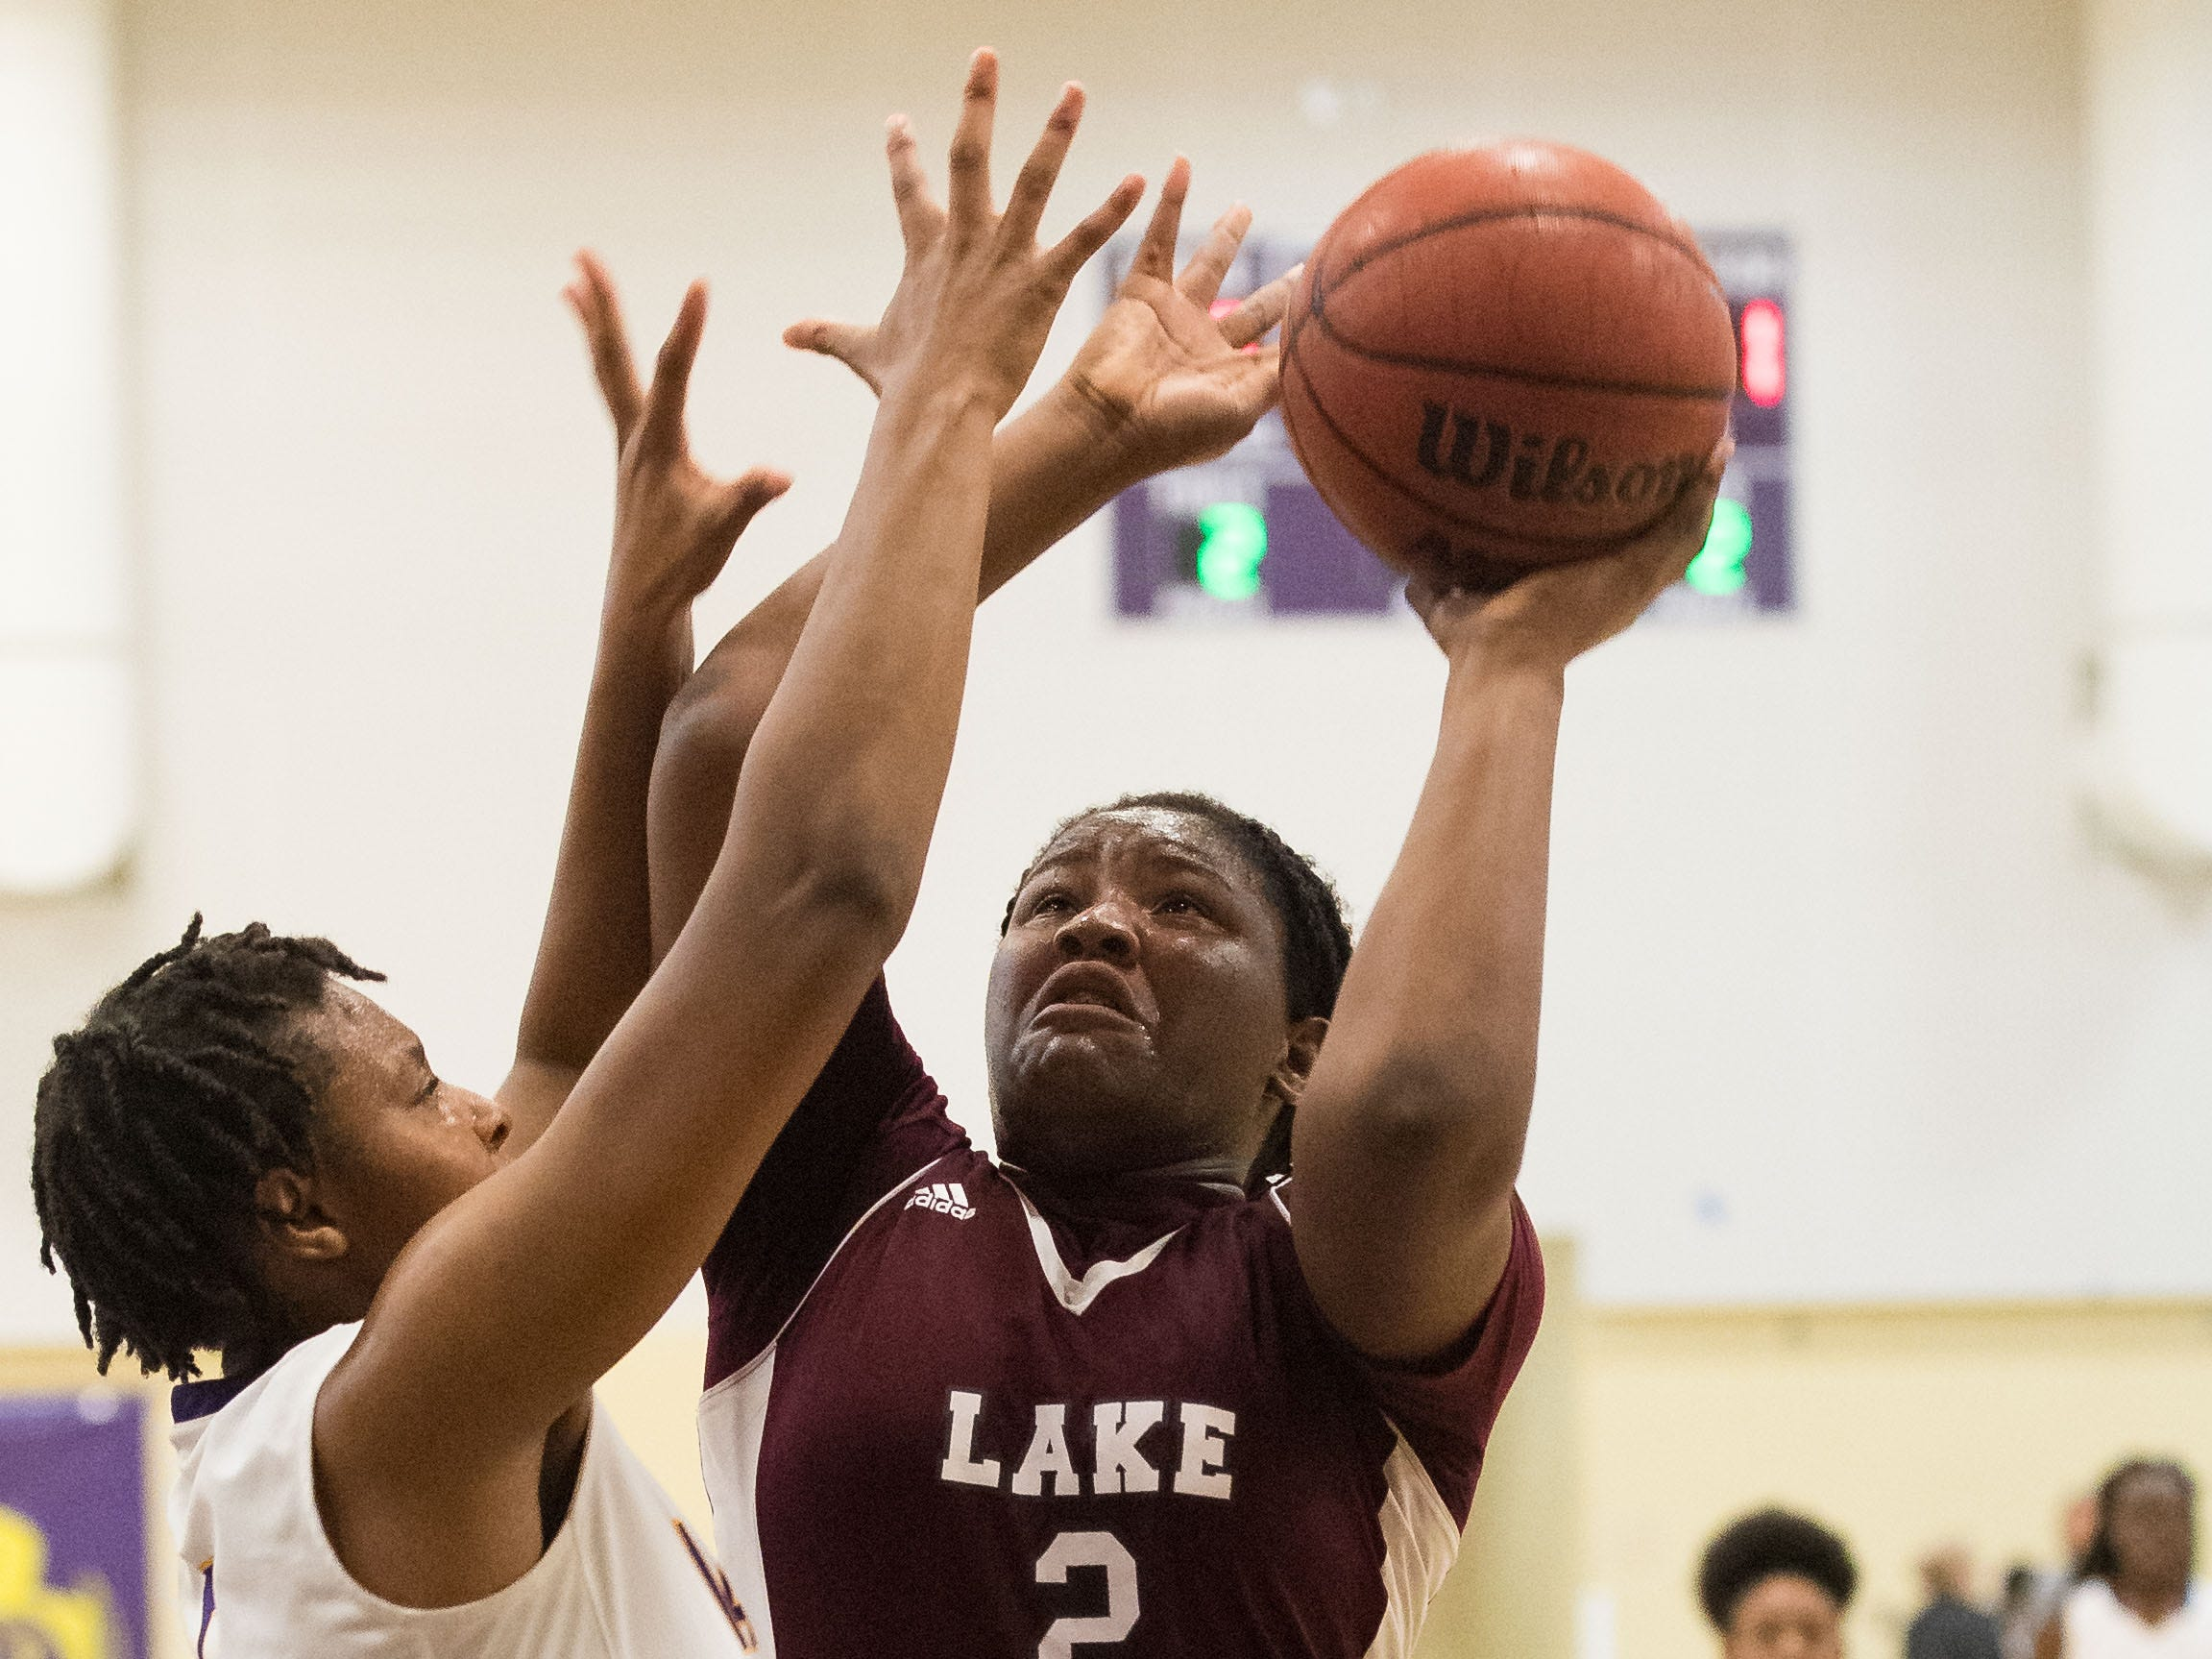 Lake Worth's Monique Joseph (right) tries to shoot over Fort Pierce Central's Amaya Howard during the first period of the high school girls basketball game Thursday, Jan. 31, 2019, at Fort Pierce Central High School.